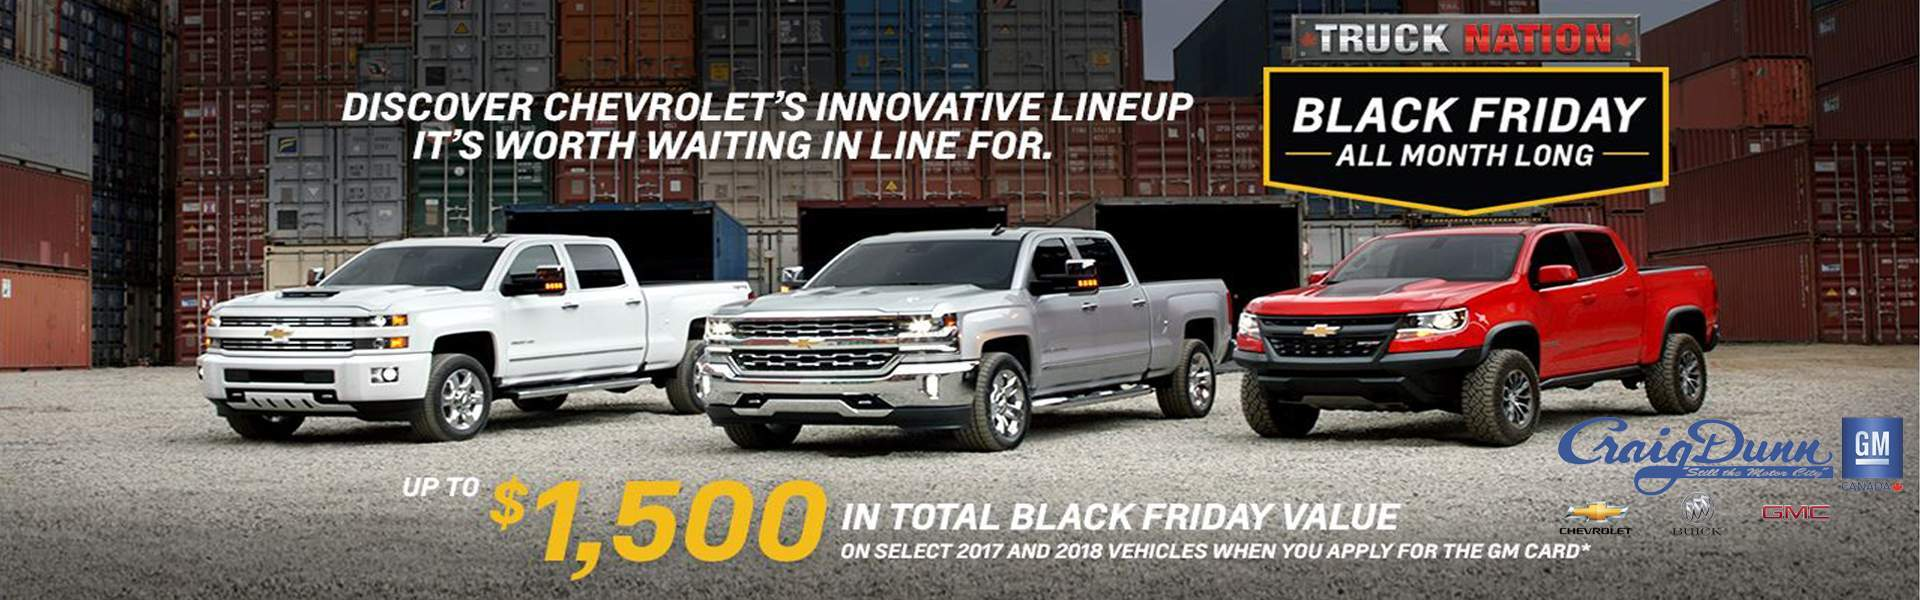 chevrolet black friday winnipeg, mb